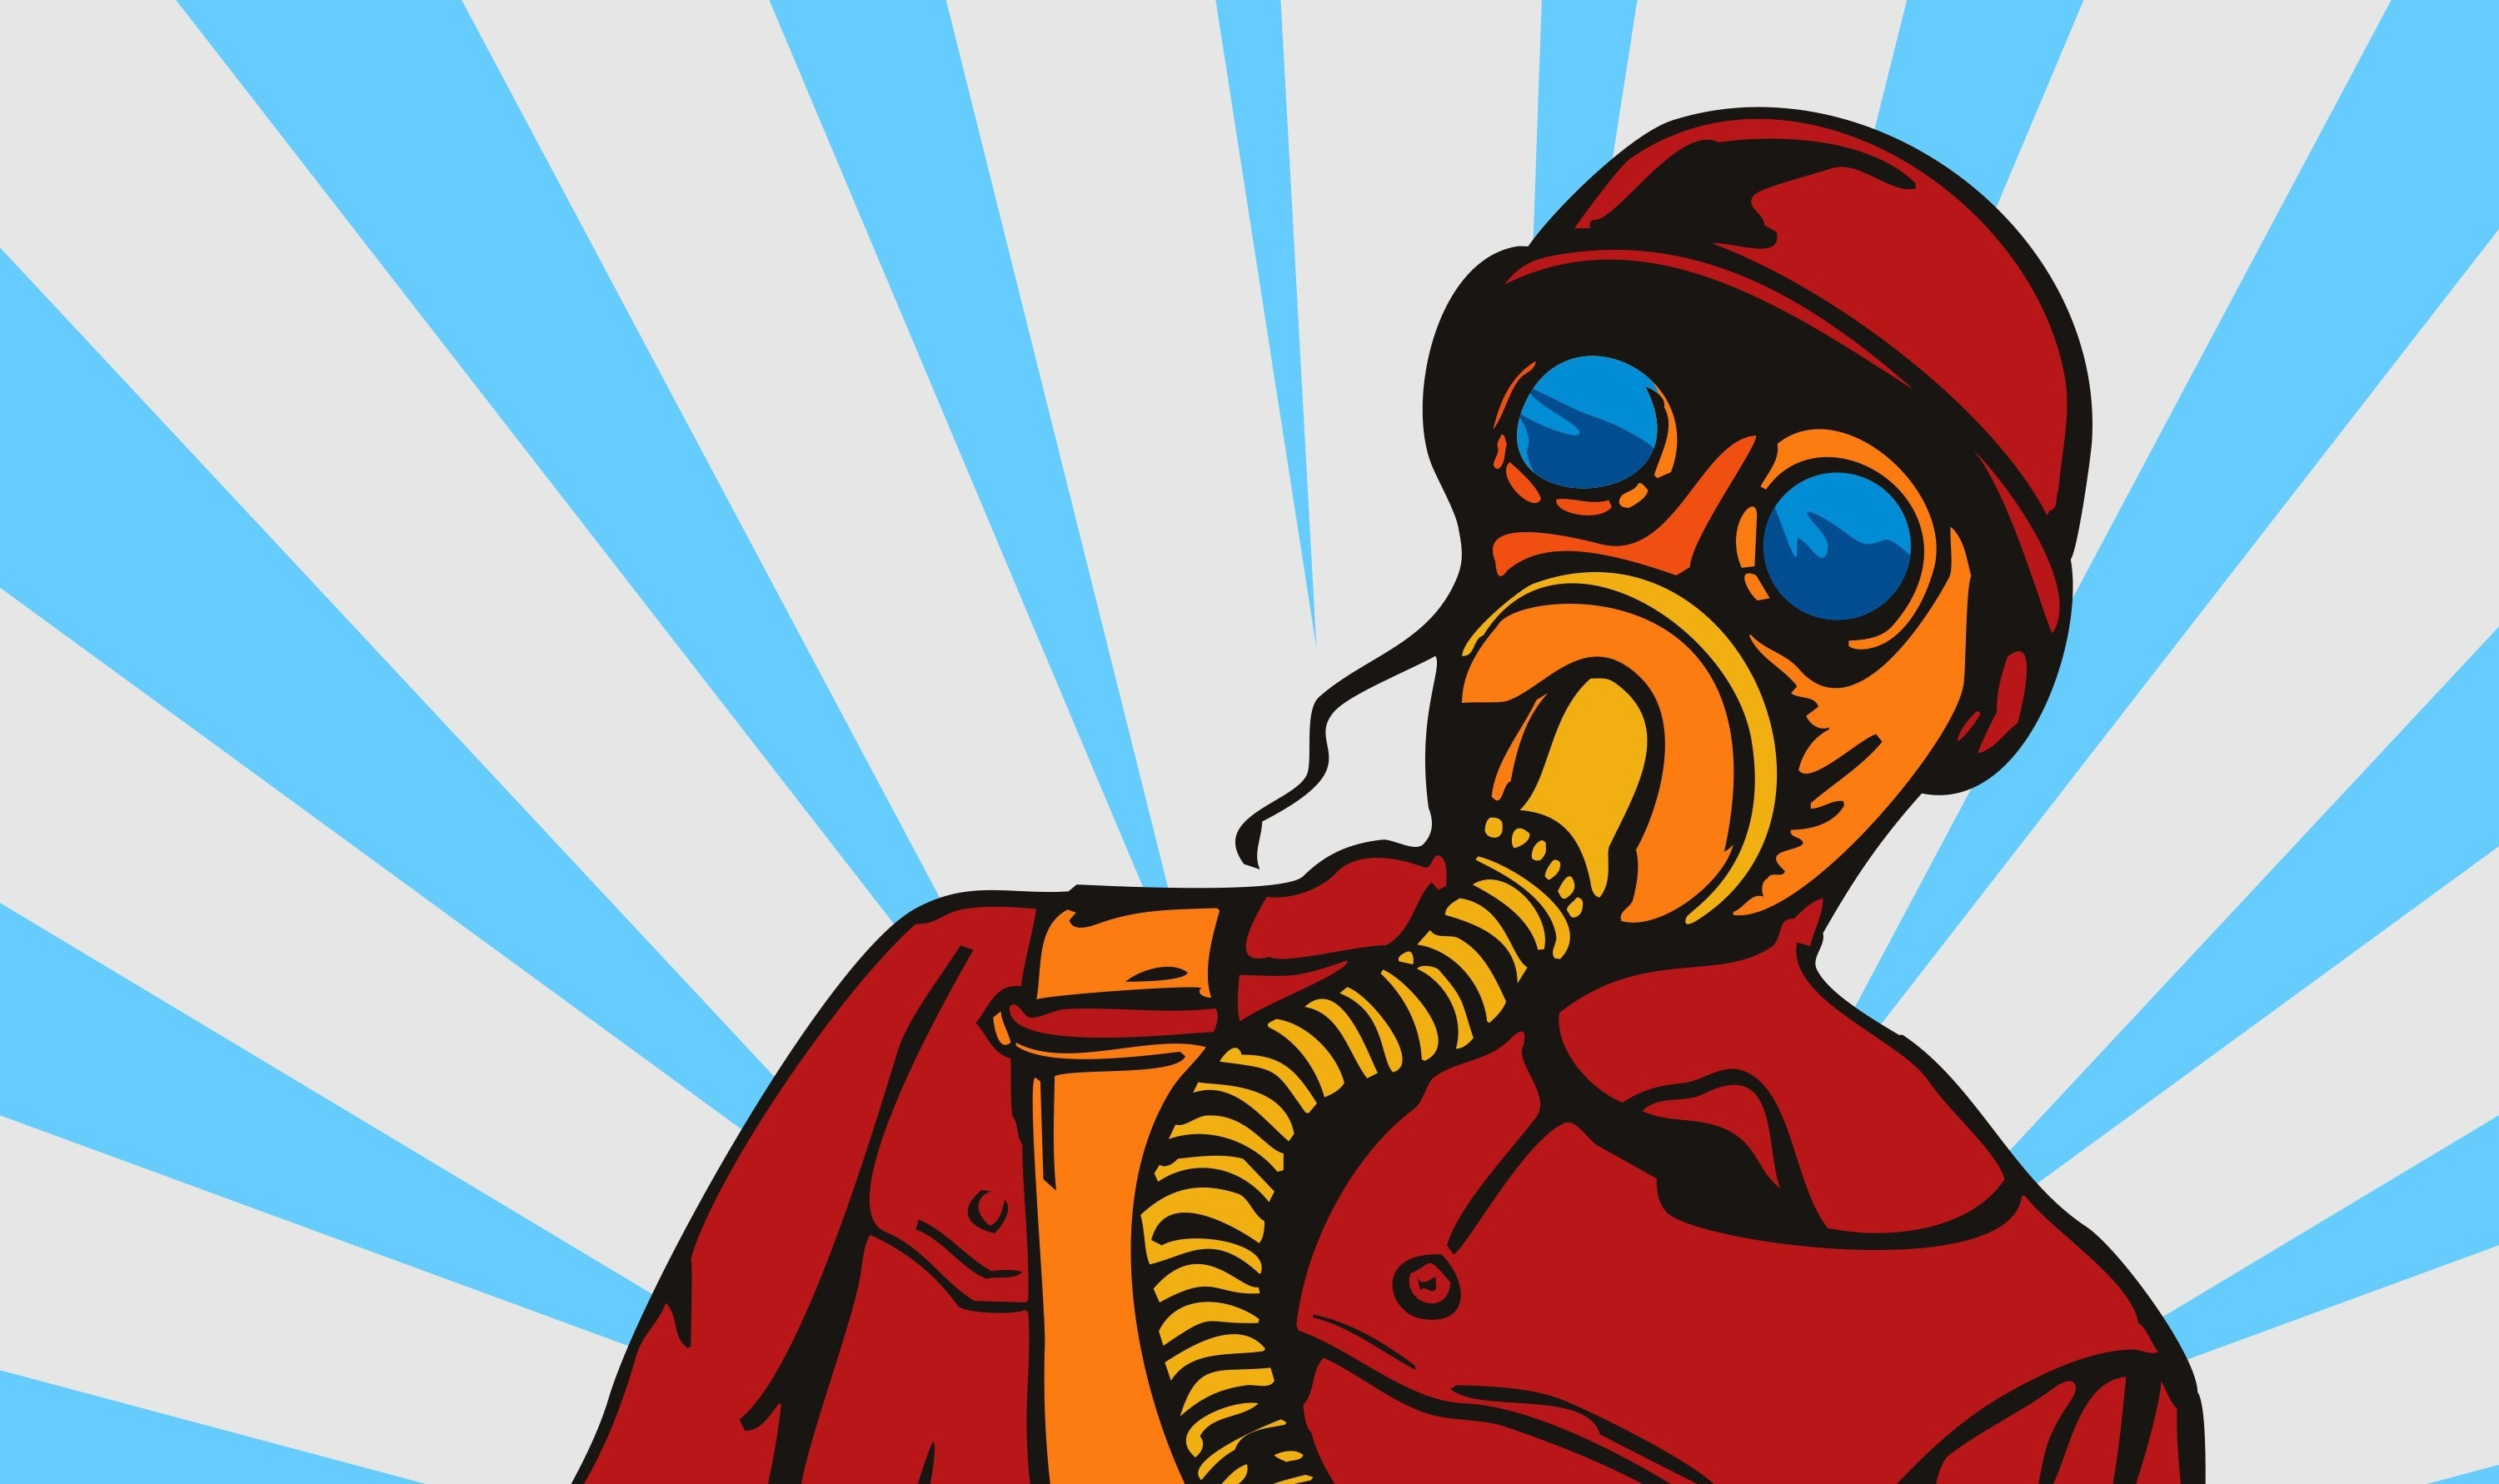 Fart clipart gas mask. What is spirit farting